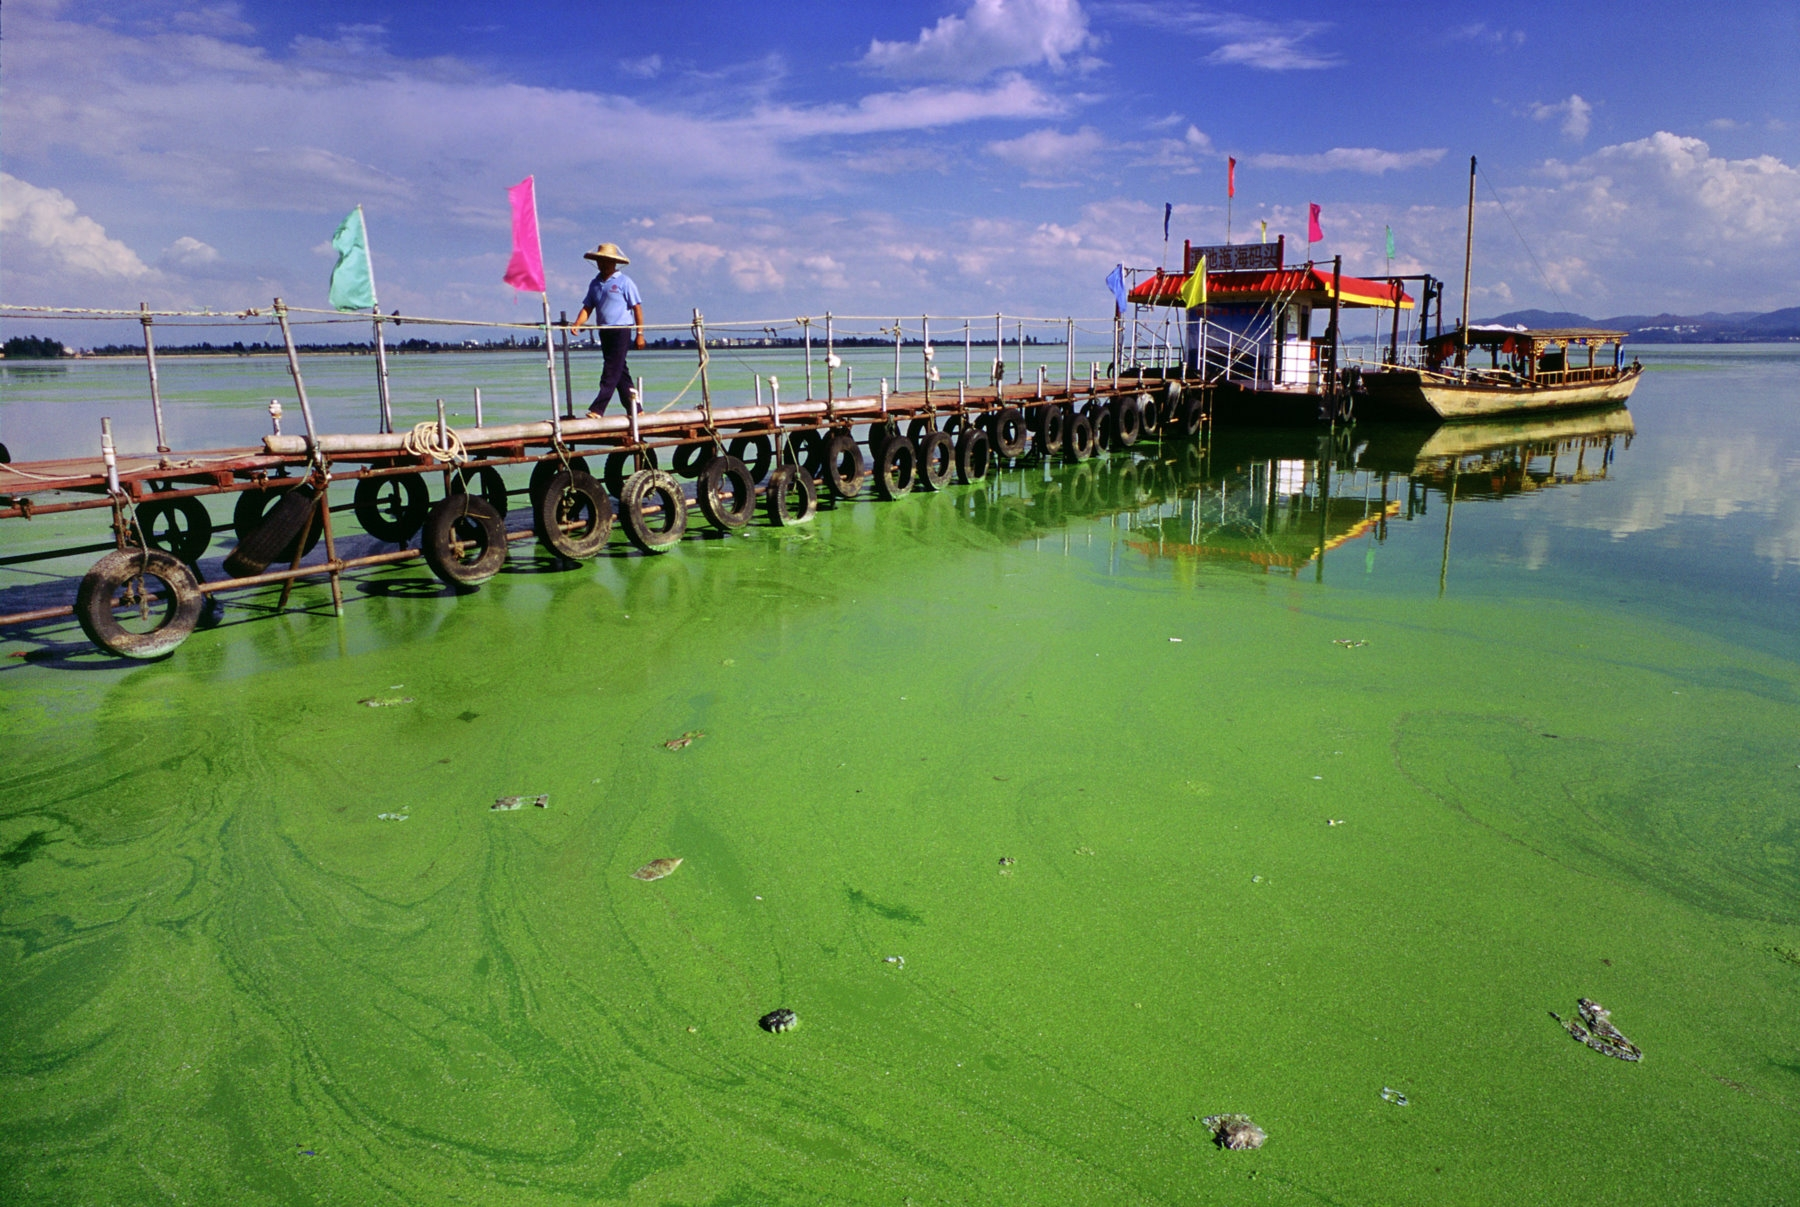 An algal bloom in Dianchi Lake, China